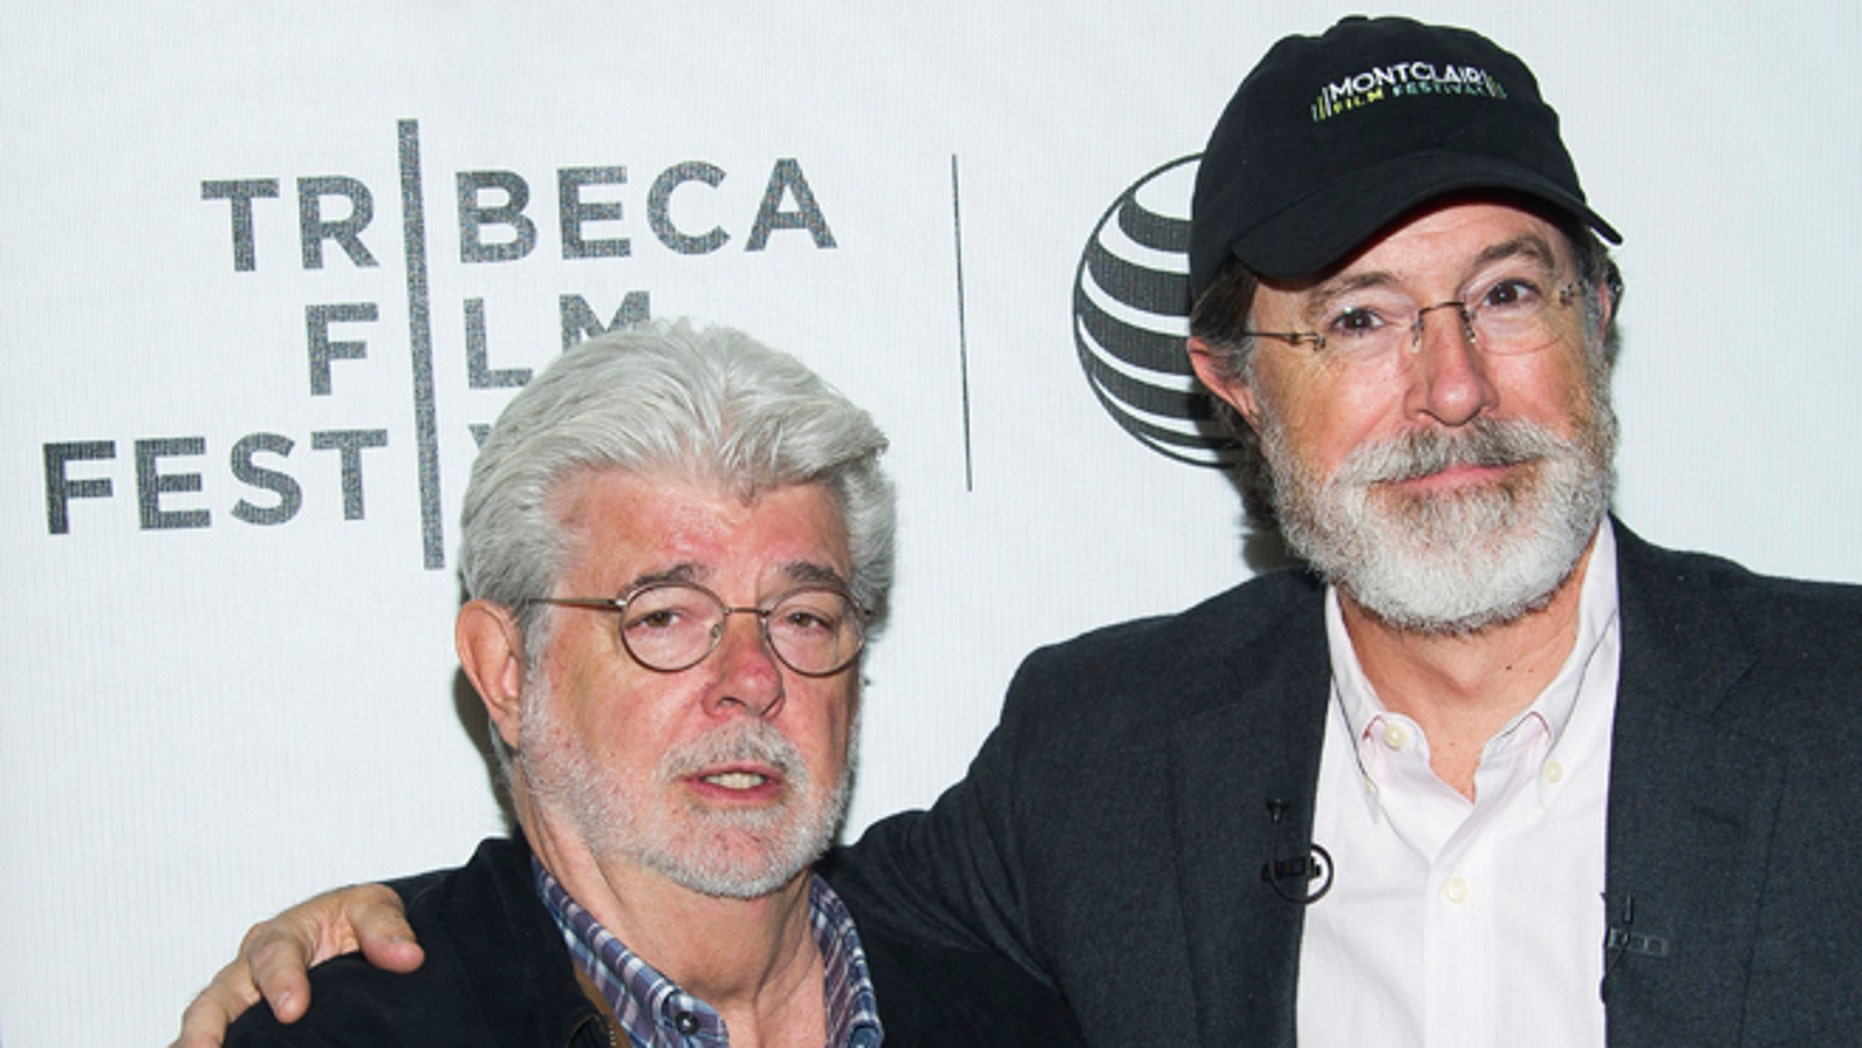 April 17, 2015. George Lucas, left, and Stephen Colbert attend the Tribeca Talks: Director Series during the Tribeca Film Festival at the BMCC Tribeca Performing Arts Center in New York.